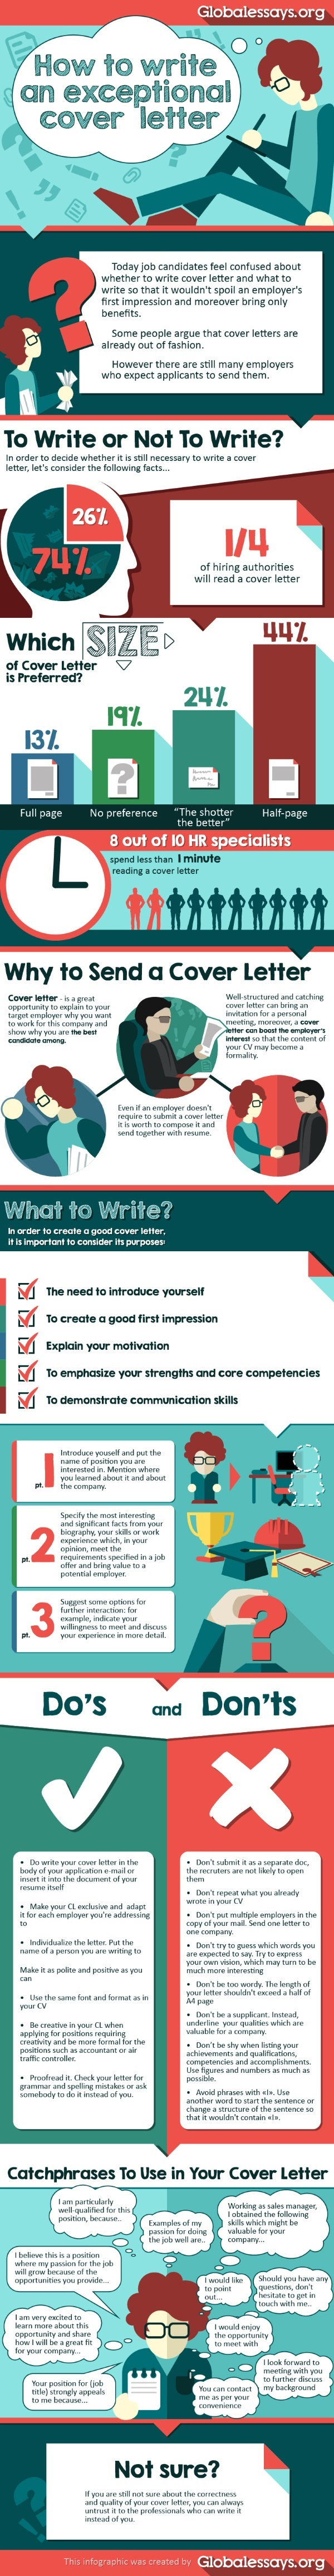 tips to write an exceptional cover letter cheat sheet